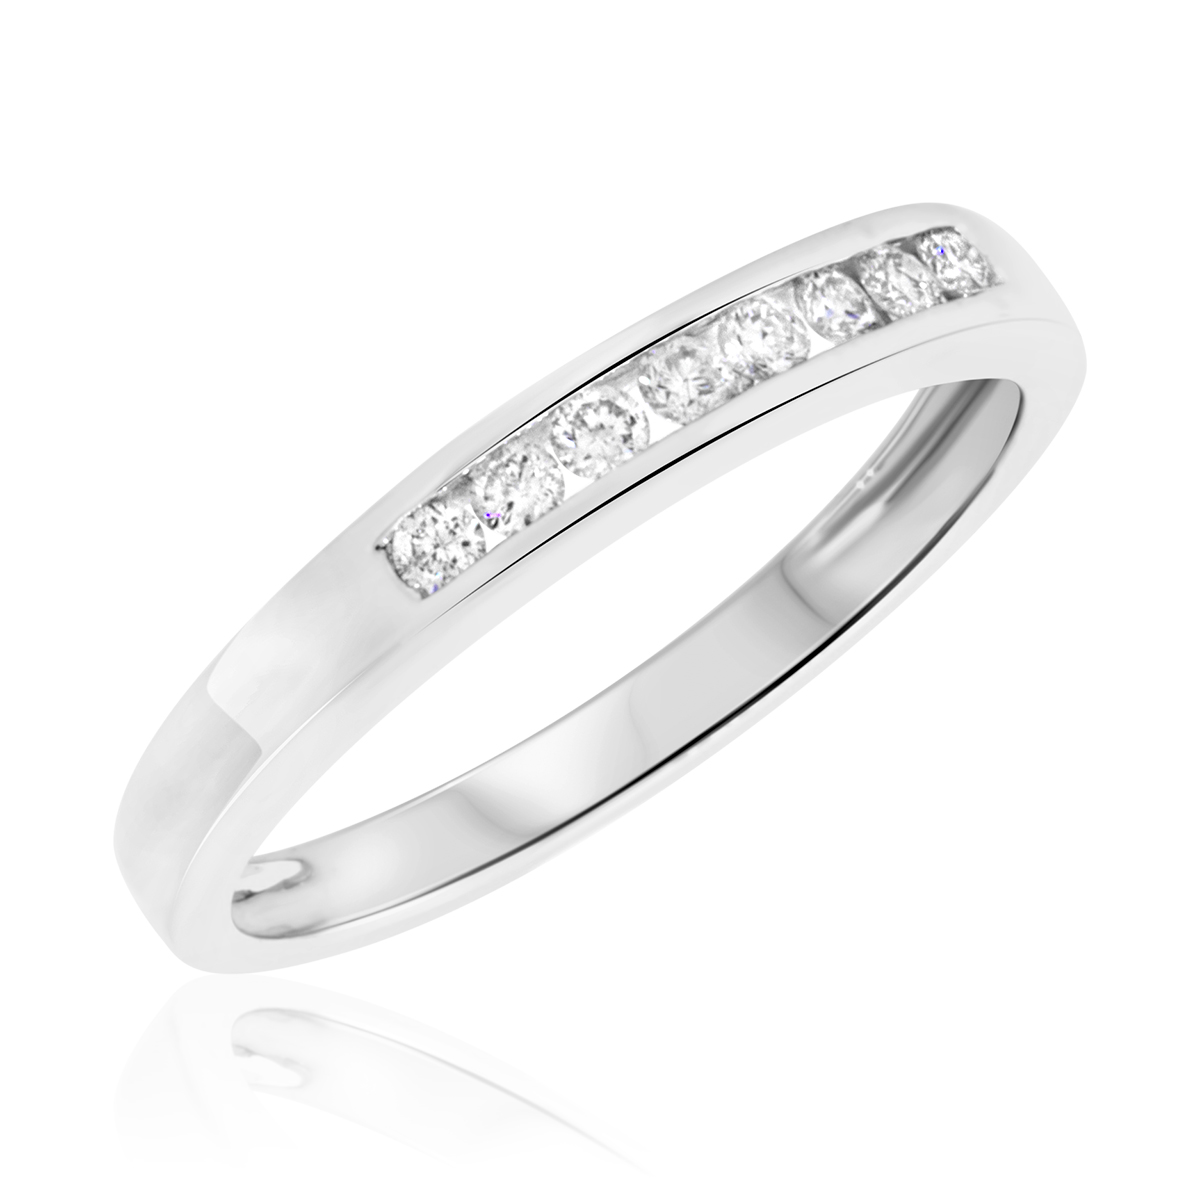 comfort fit wedding ring in 14k white gold 2mm white gold wedding band 2mm Comfort Fit Wedding Band in 14k White Gold